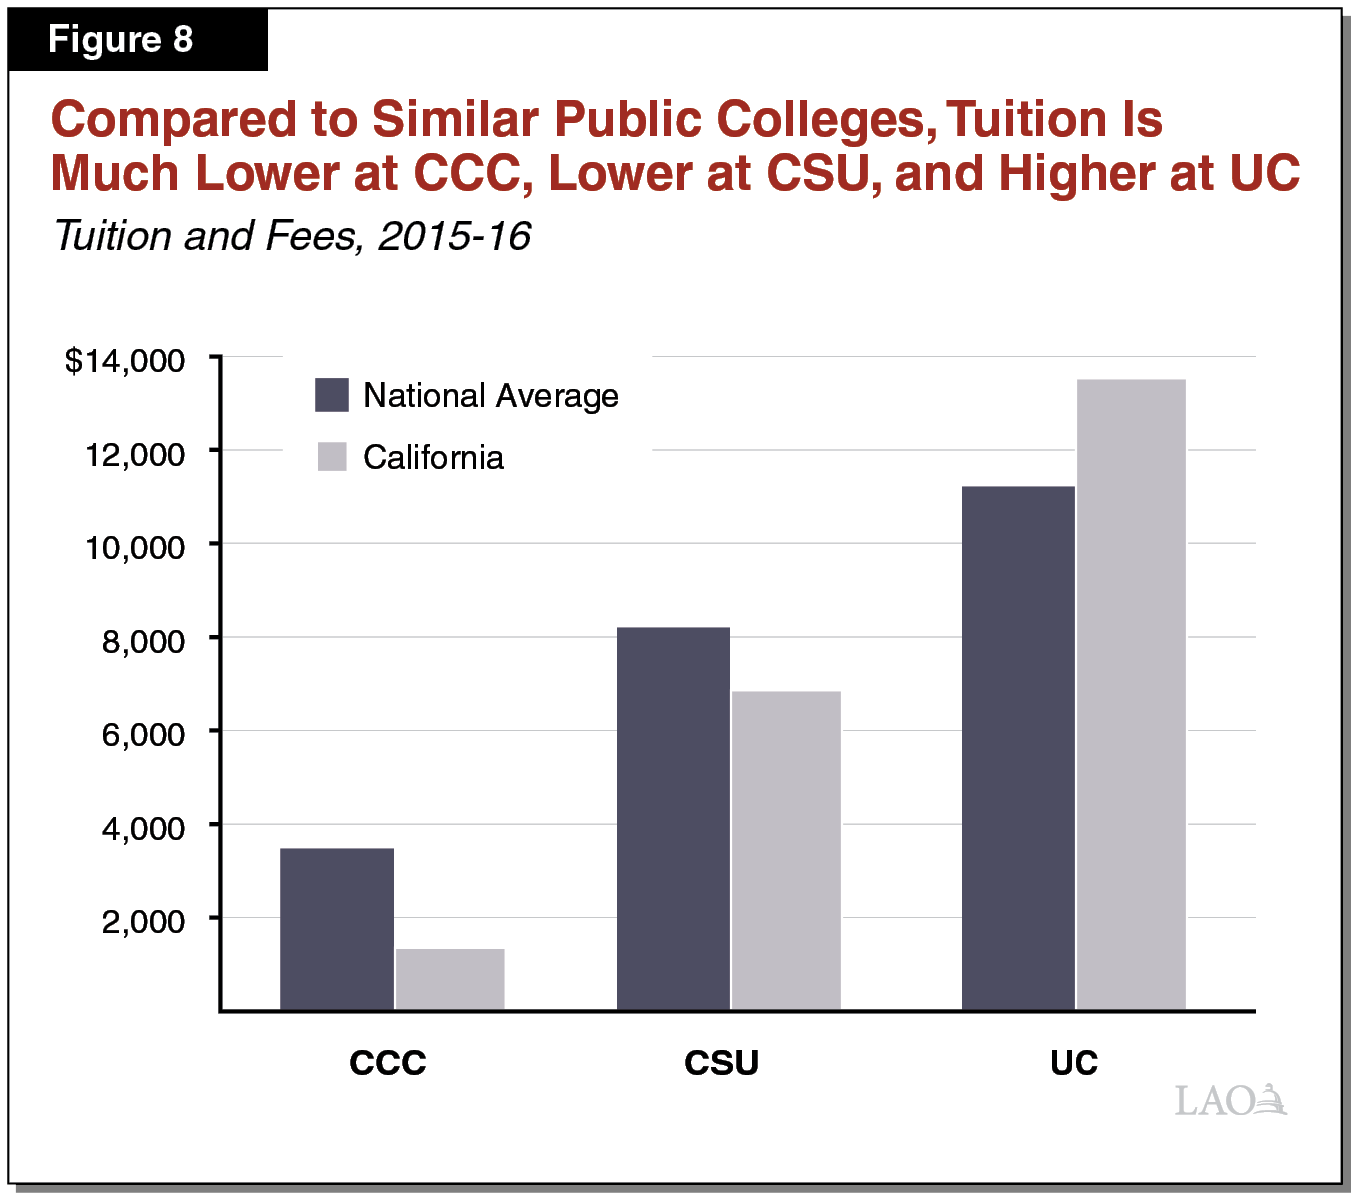 Figure 8 - Compared to Similar Public Colleges, Tuition Is